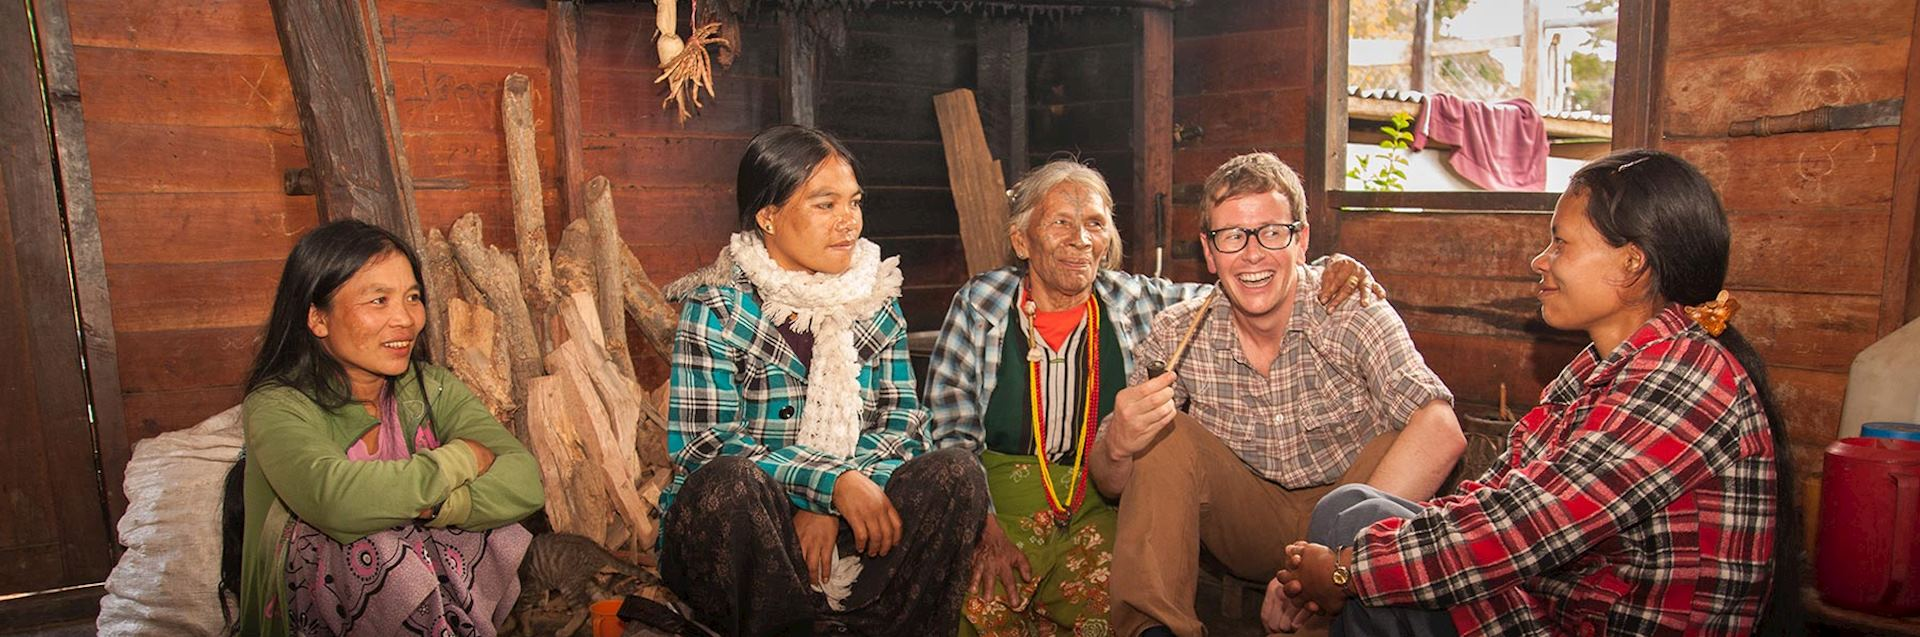 Specialist Mark with members of the Muun tribe in Burma